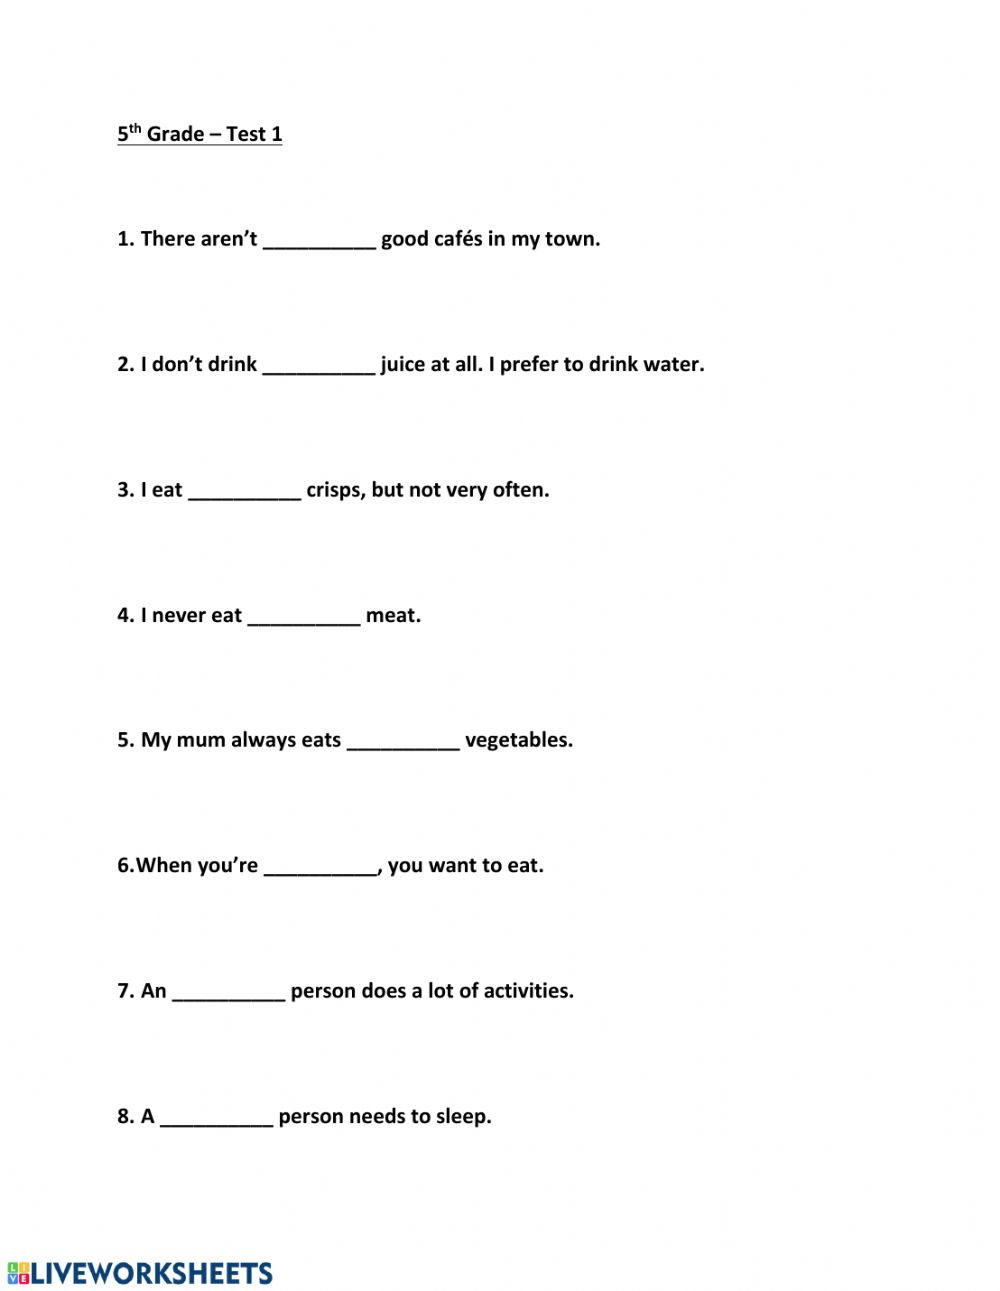 5th Grade Test 1 Worksheet